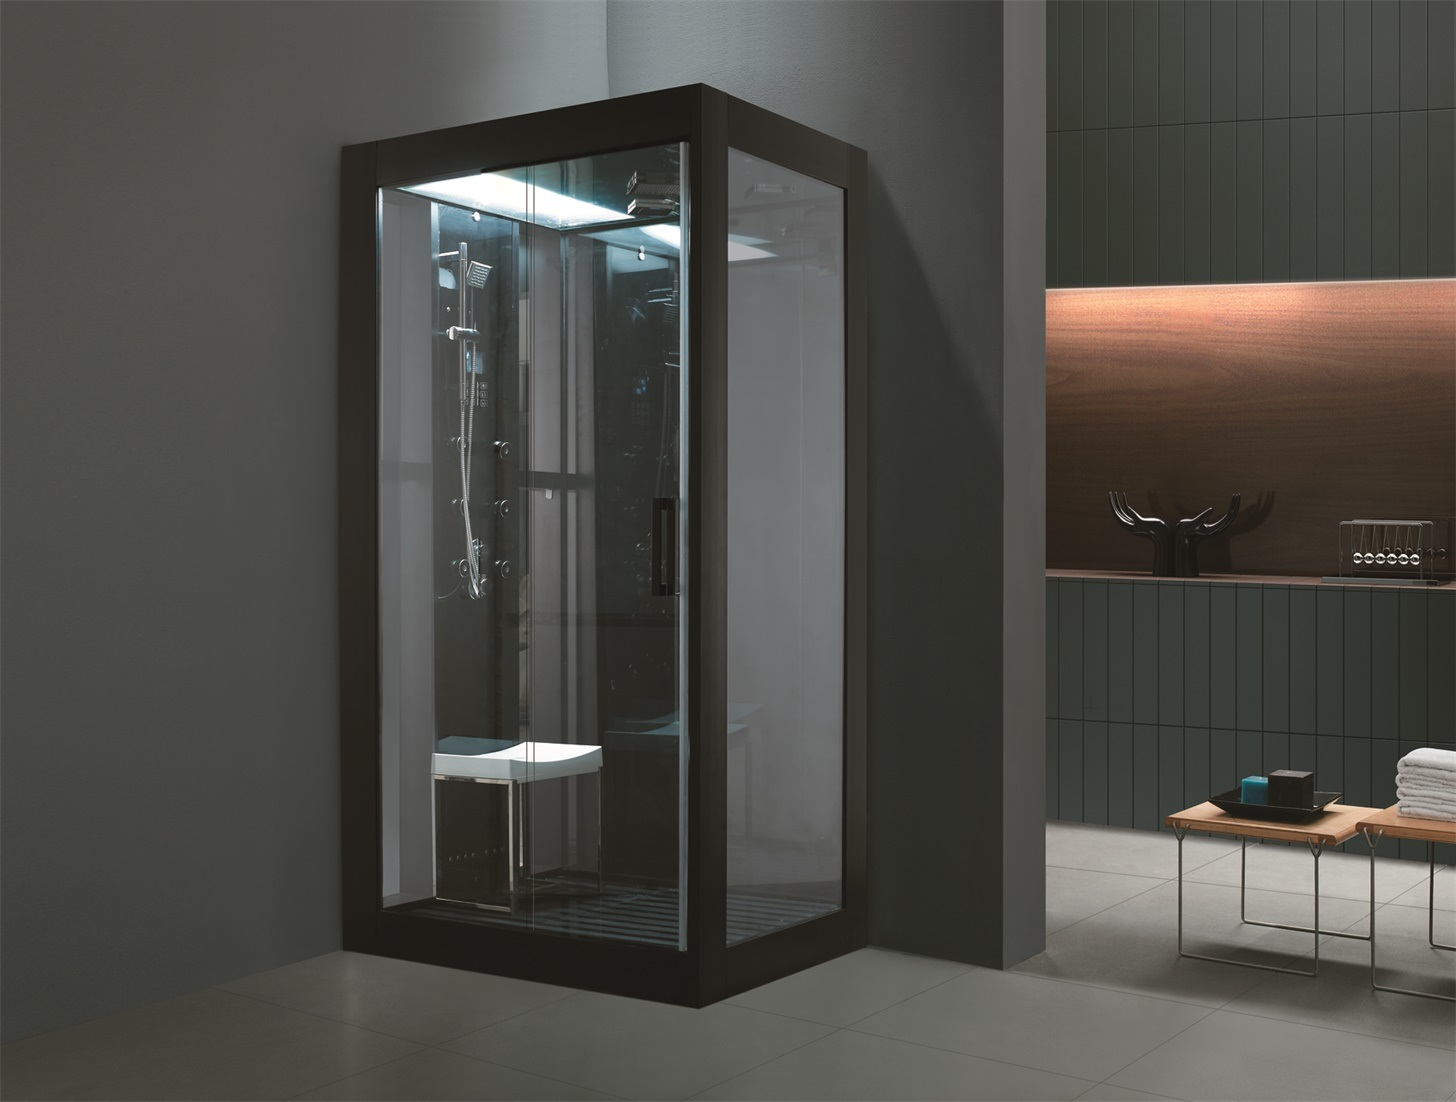 USA Acrylic High End Steam Shower Cabin (M-8282) - China Hydro ...